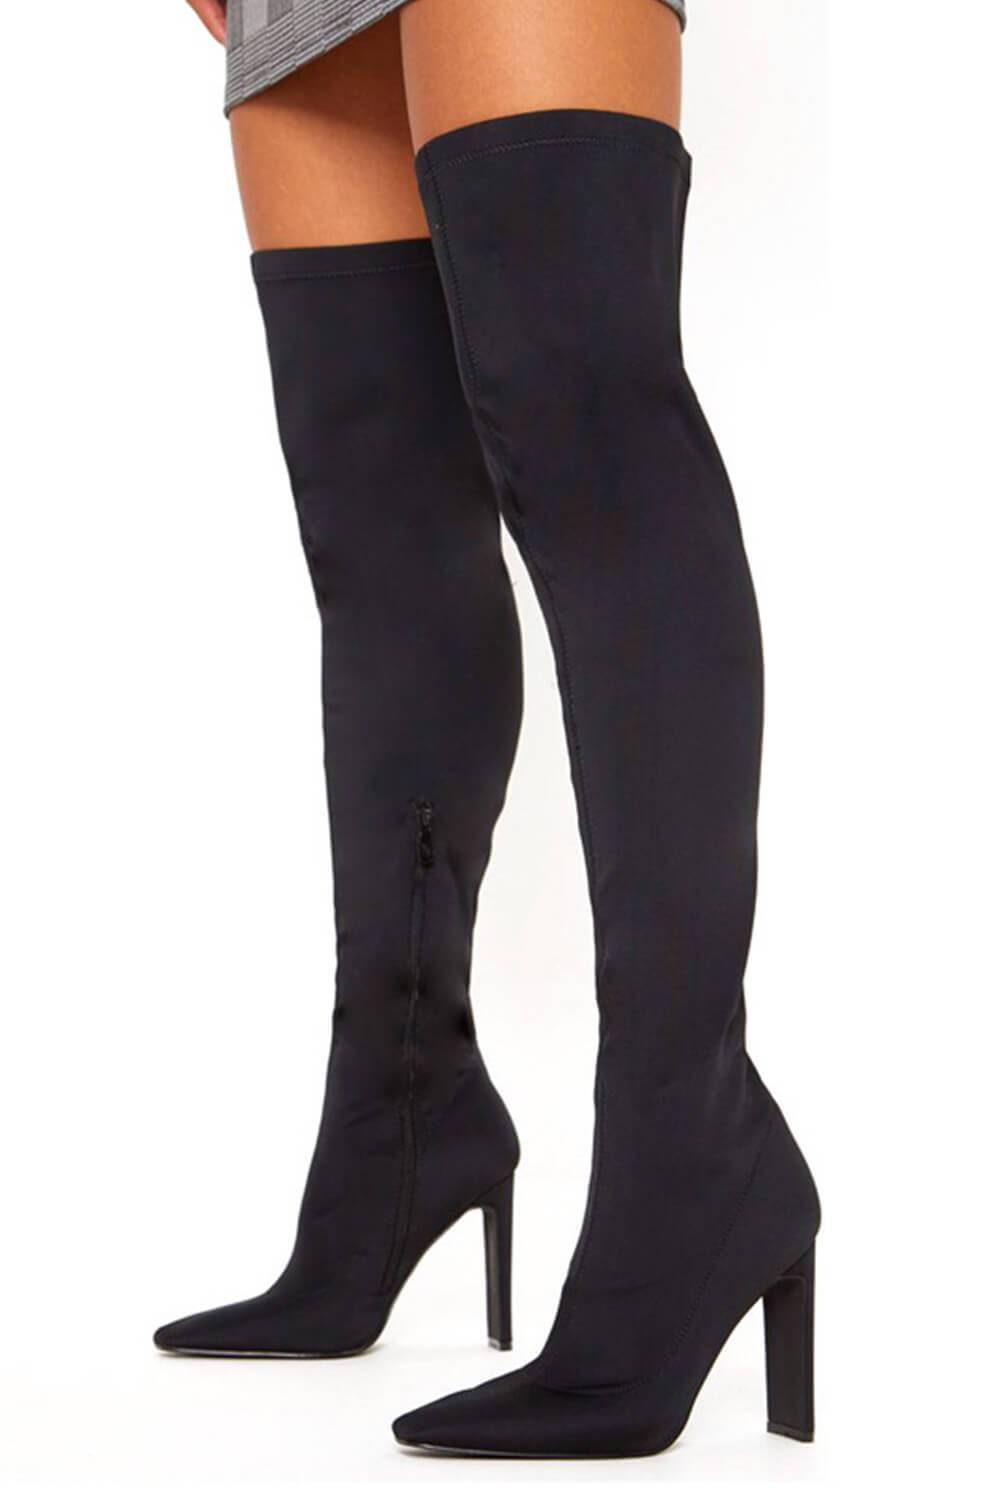 Black Heeled Thigh High Sock Boots (4095660851259)